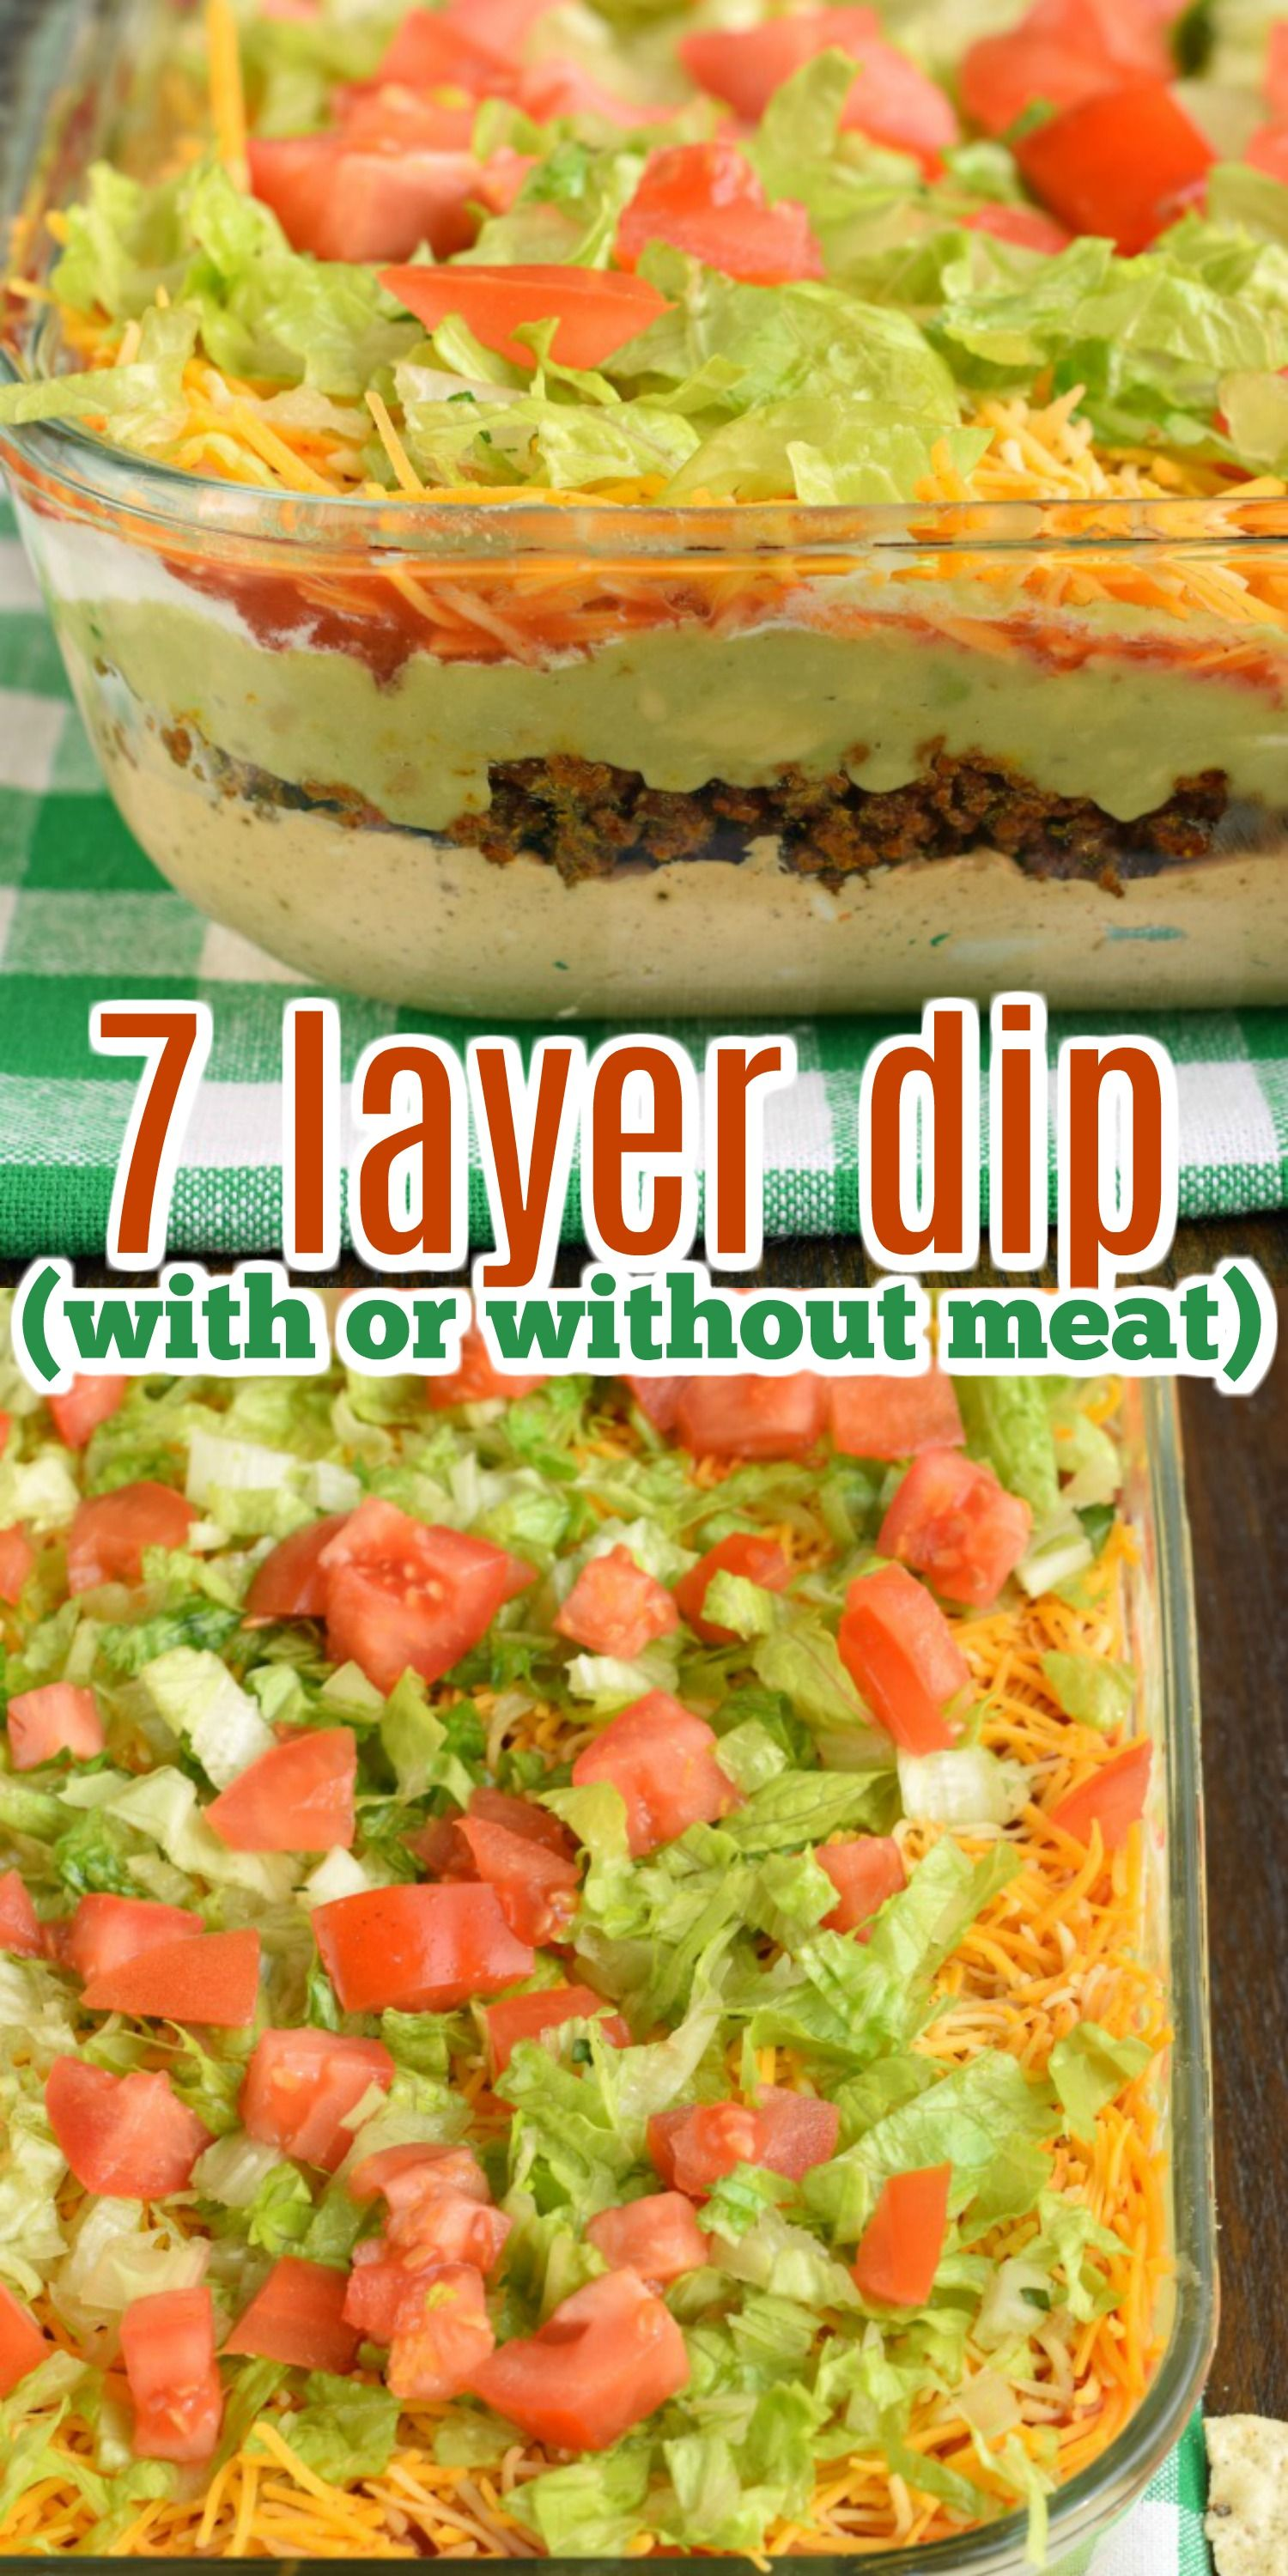 7 Layer Dip In 2020 Layered Dip Recipes Dip Recipes Yummy Dips